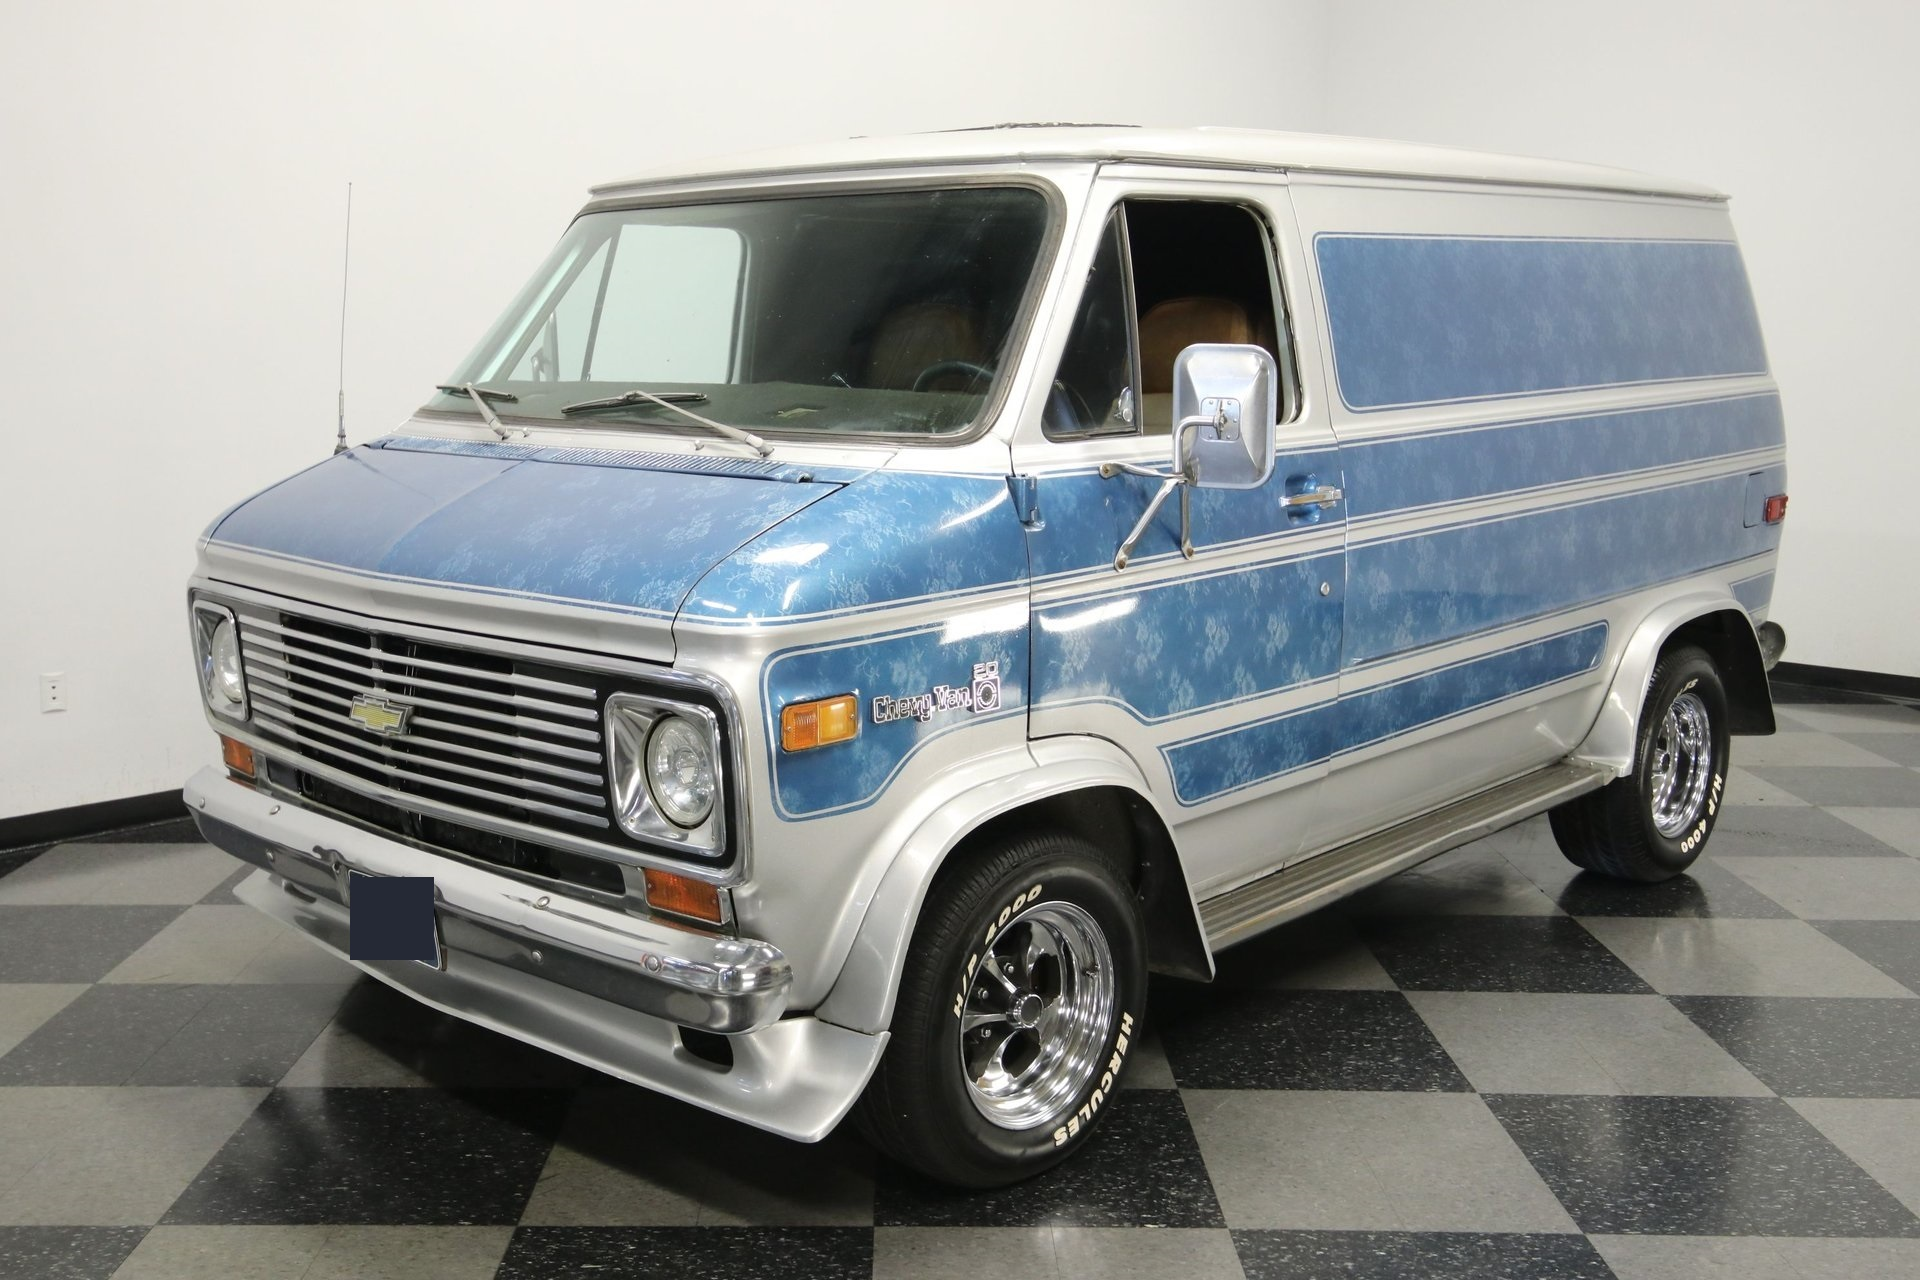 1977-chevrolet-g20-shorty-van-qddj1-z